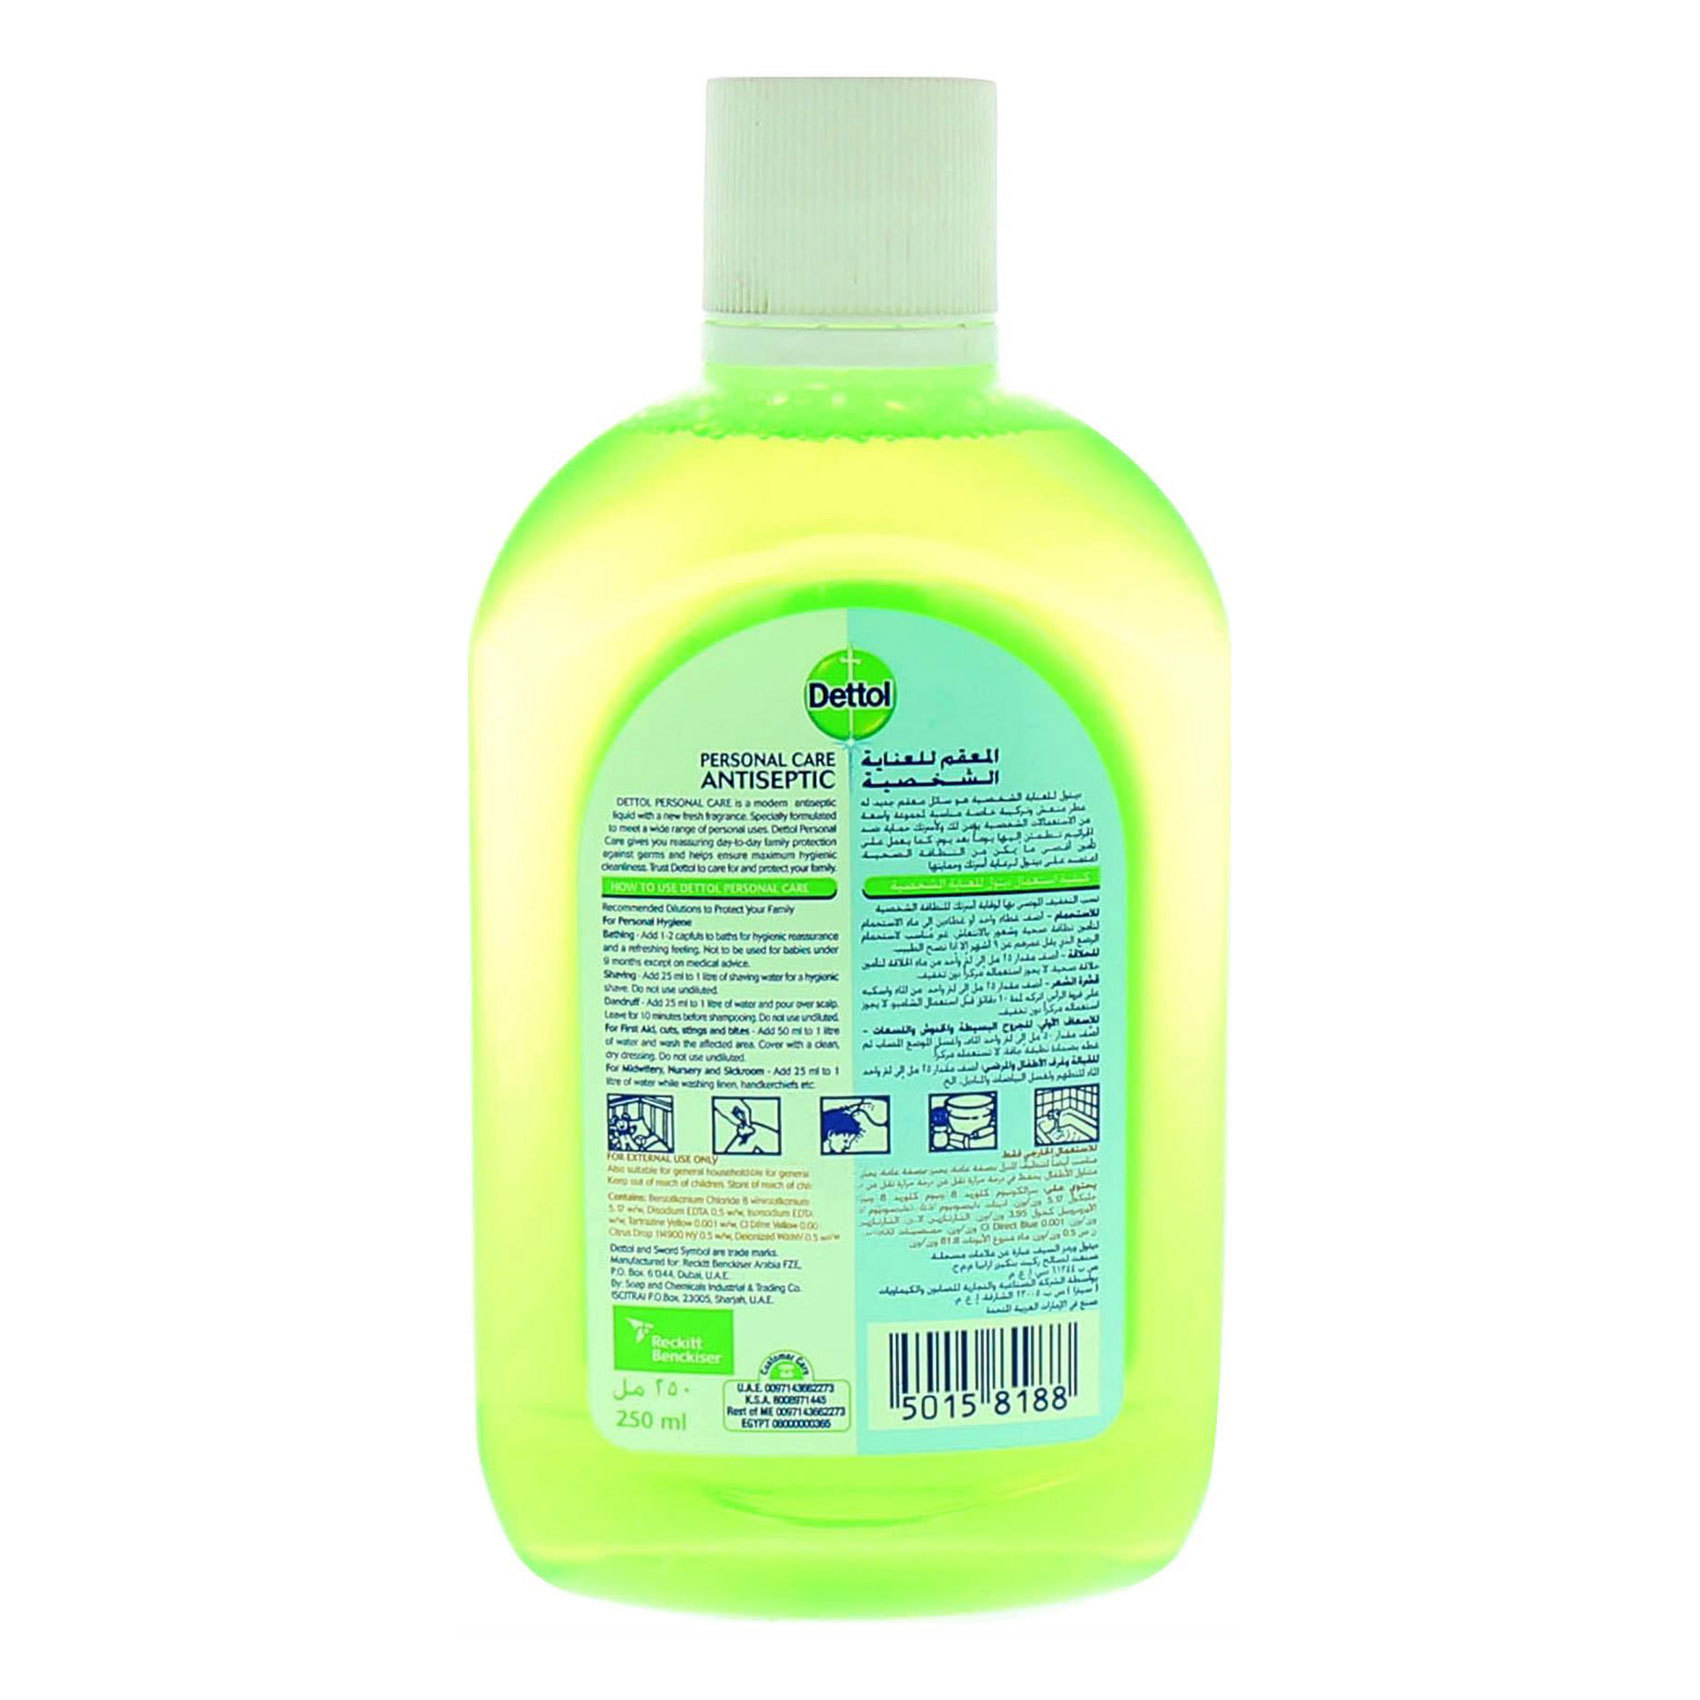 DETTOL PERSONAL CARE ANTISEP 250ML